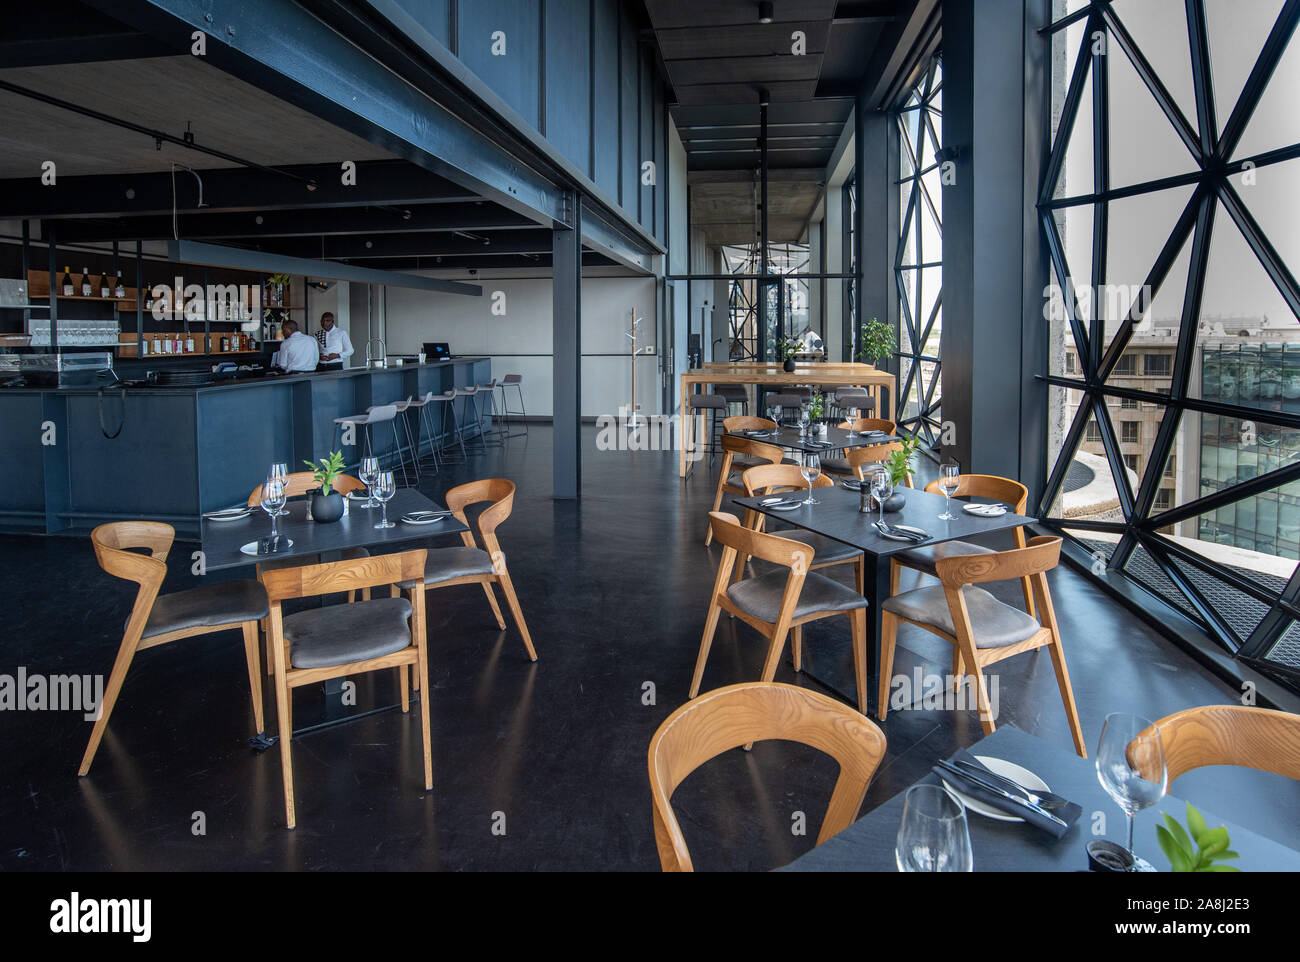 High level restaurant or cafe with amazing views in the Zeitz MOCCA museum of Contemporary Art Africa in Cape Town, South Africa Stock Photo